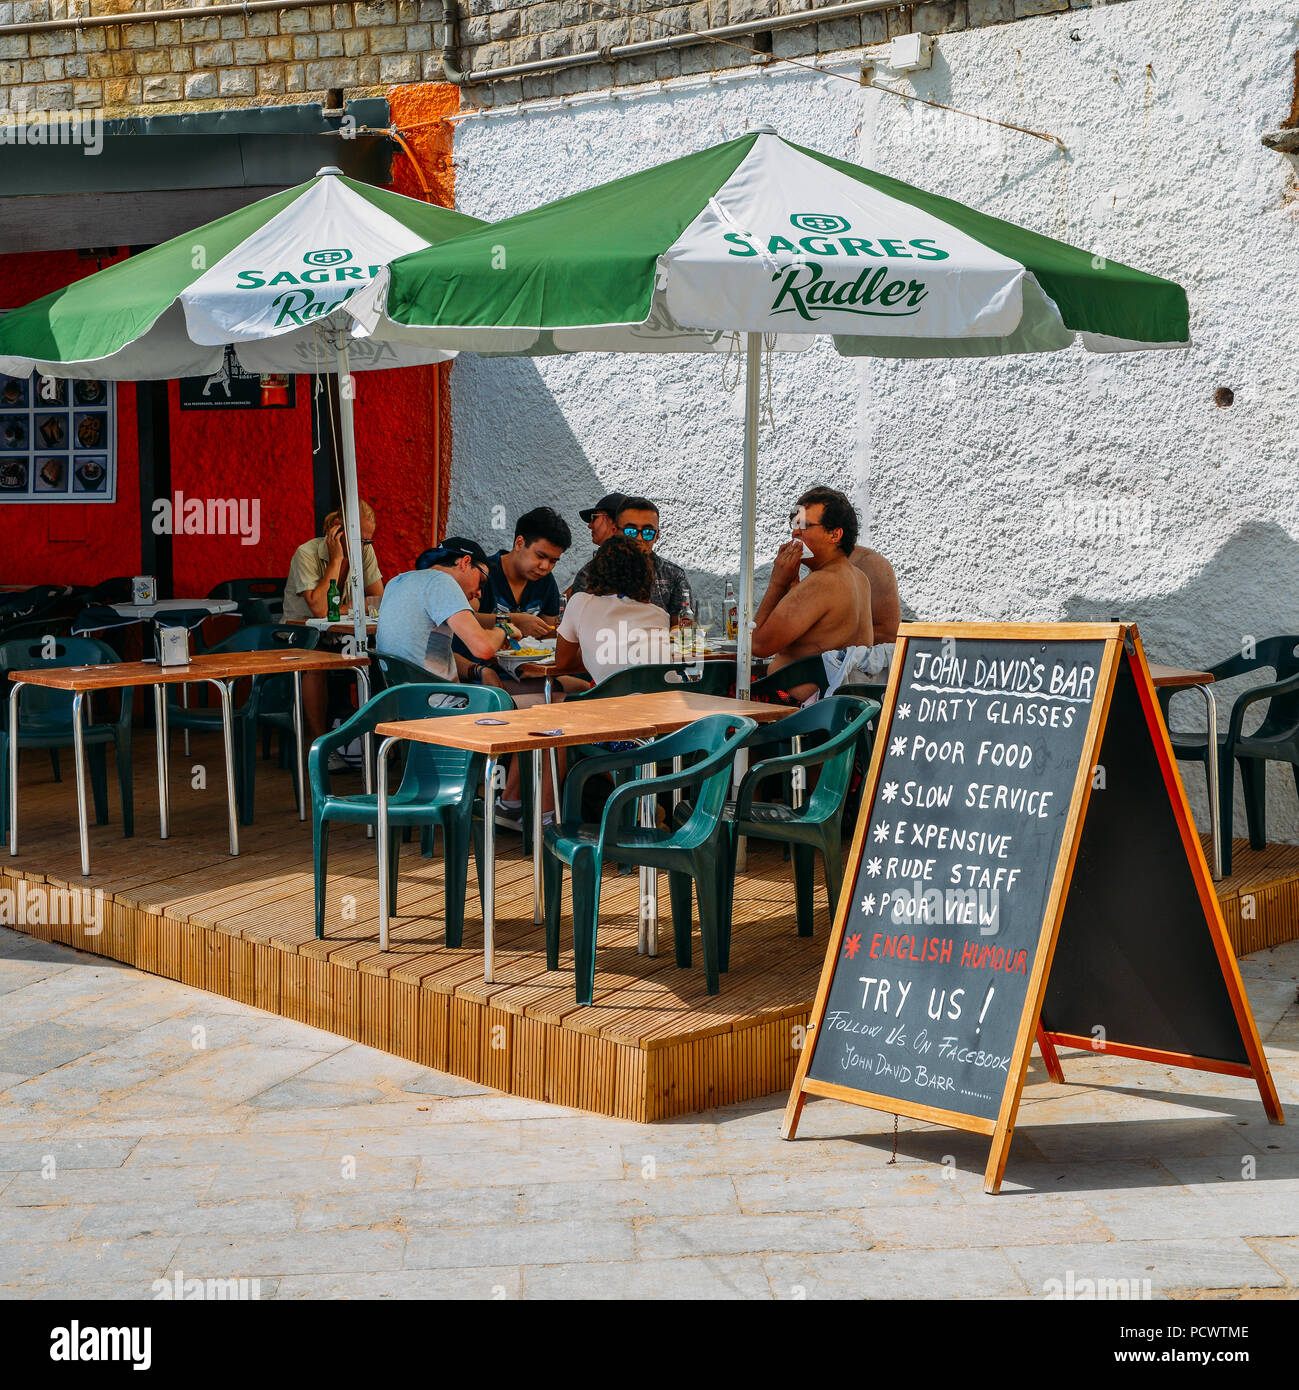 Sign with British humour at a pub in Cascais, Portugal - Stock Image